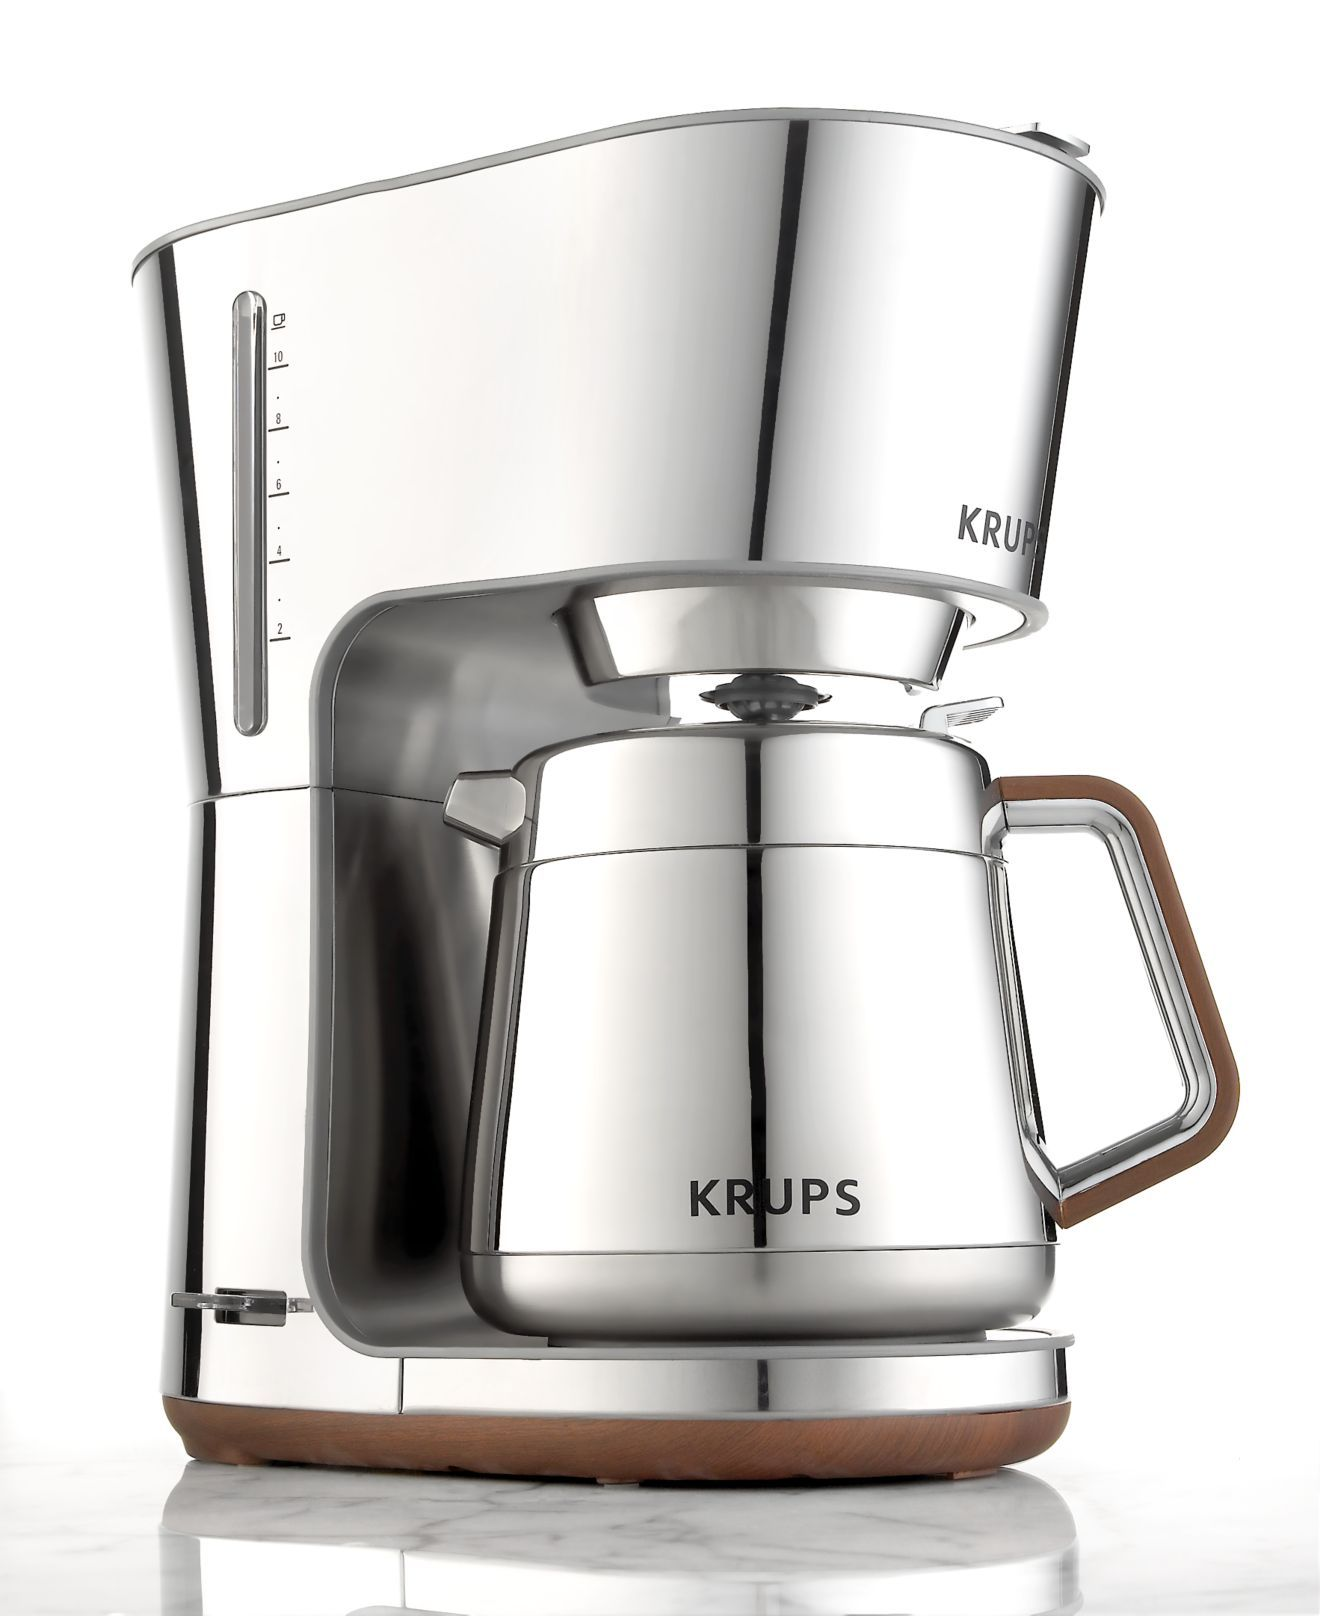 krups kt600 coffee machine silver art 10 cup the most. Black Bedroom Furniture Sets. Home Design Ideas